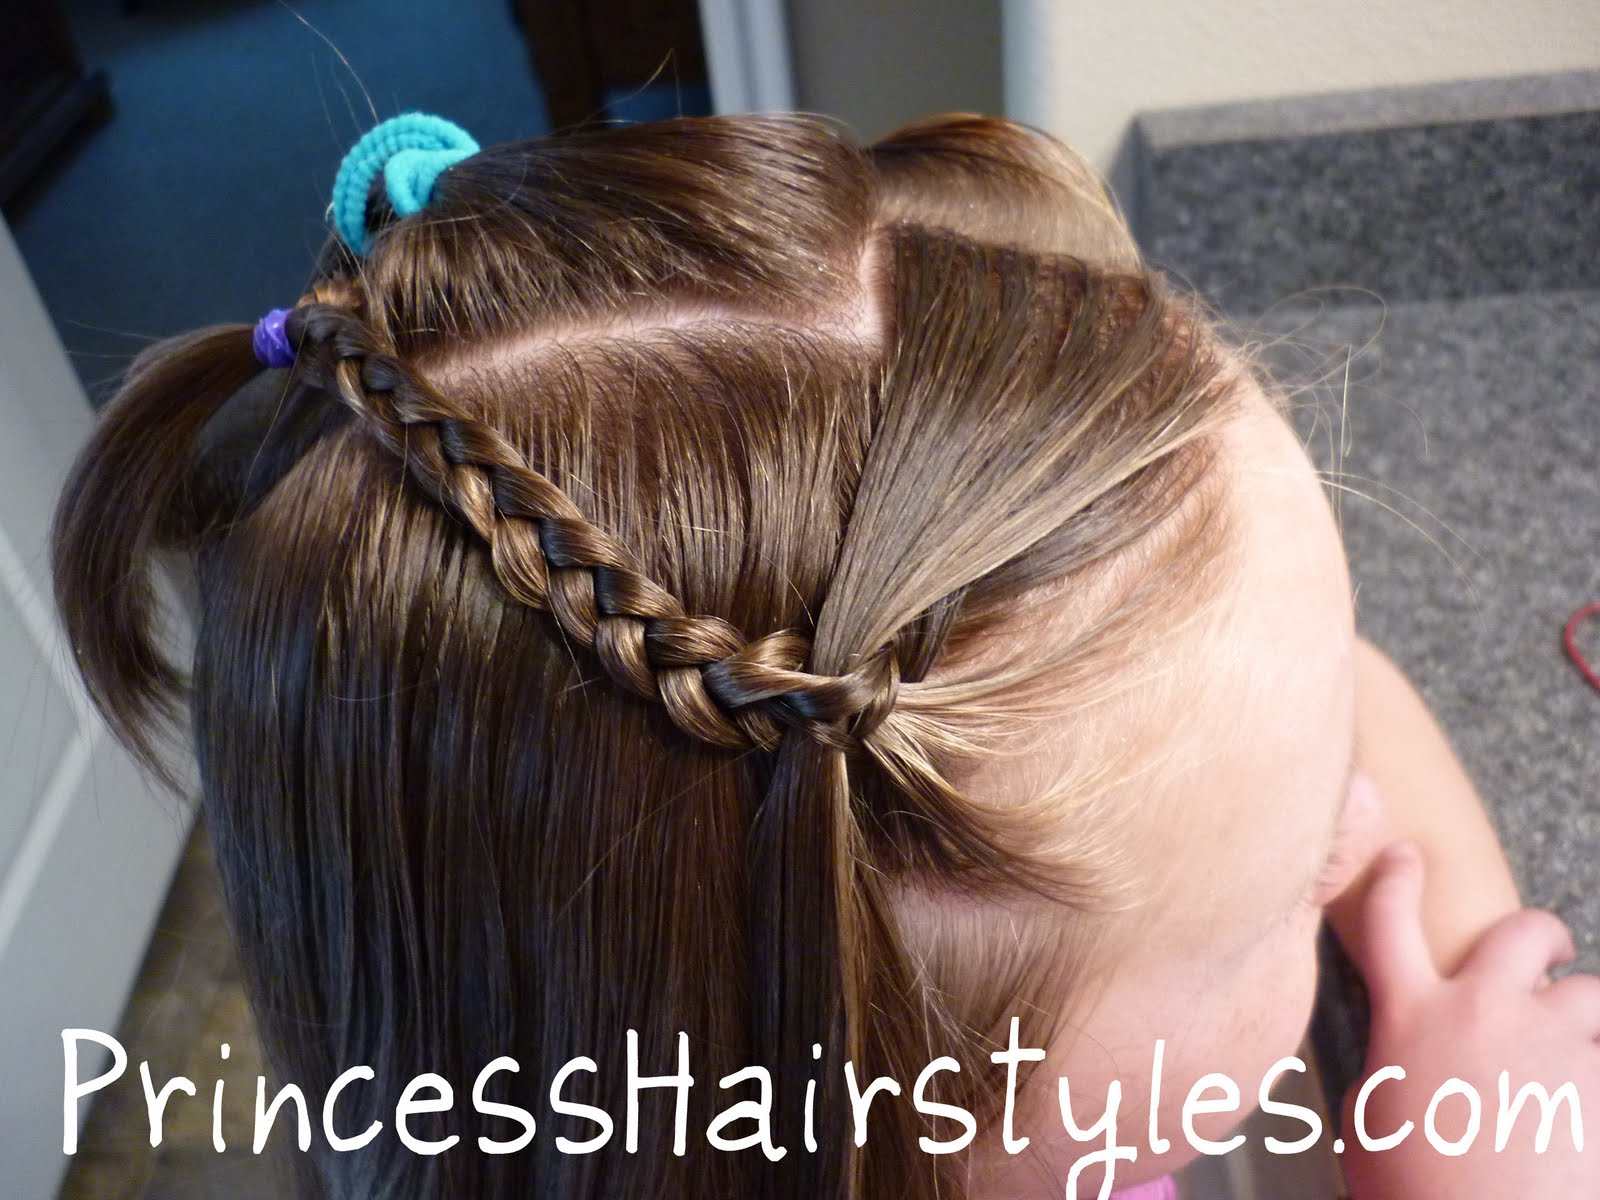 No French Braid Waterfall Braid Hairstyles For Girls Princess Hairstyles